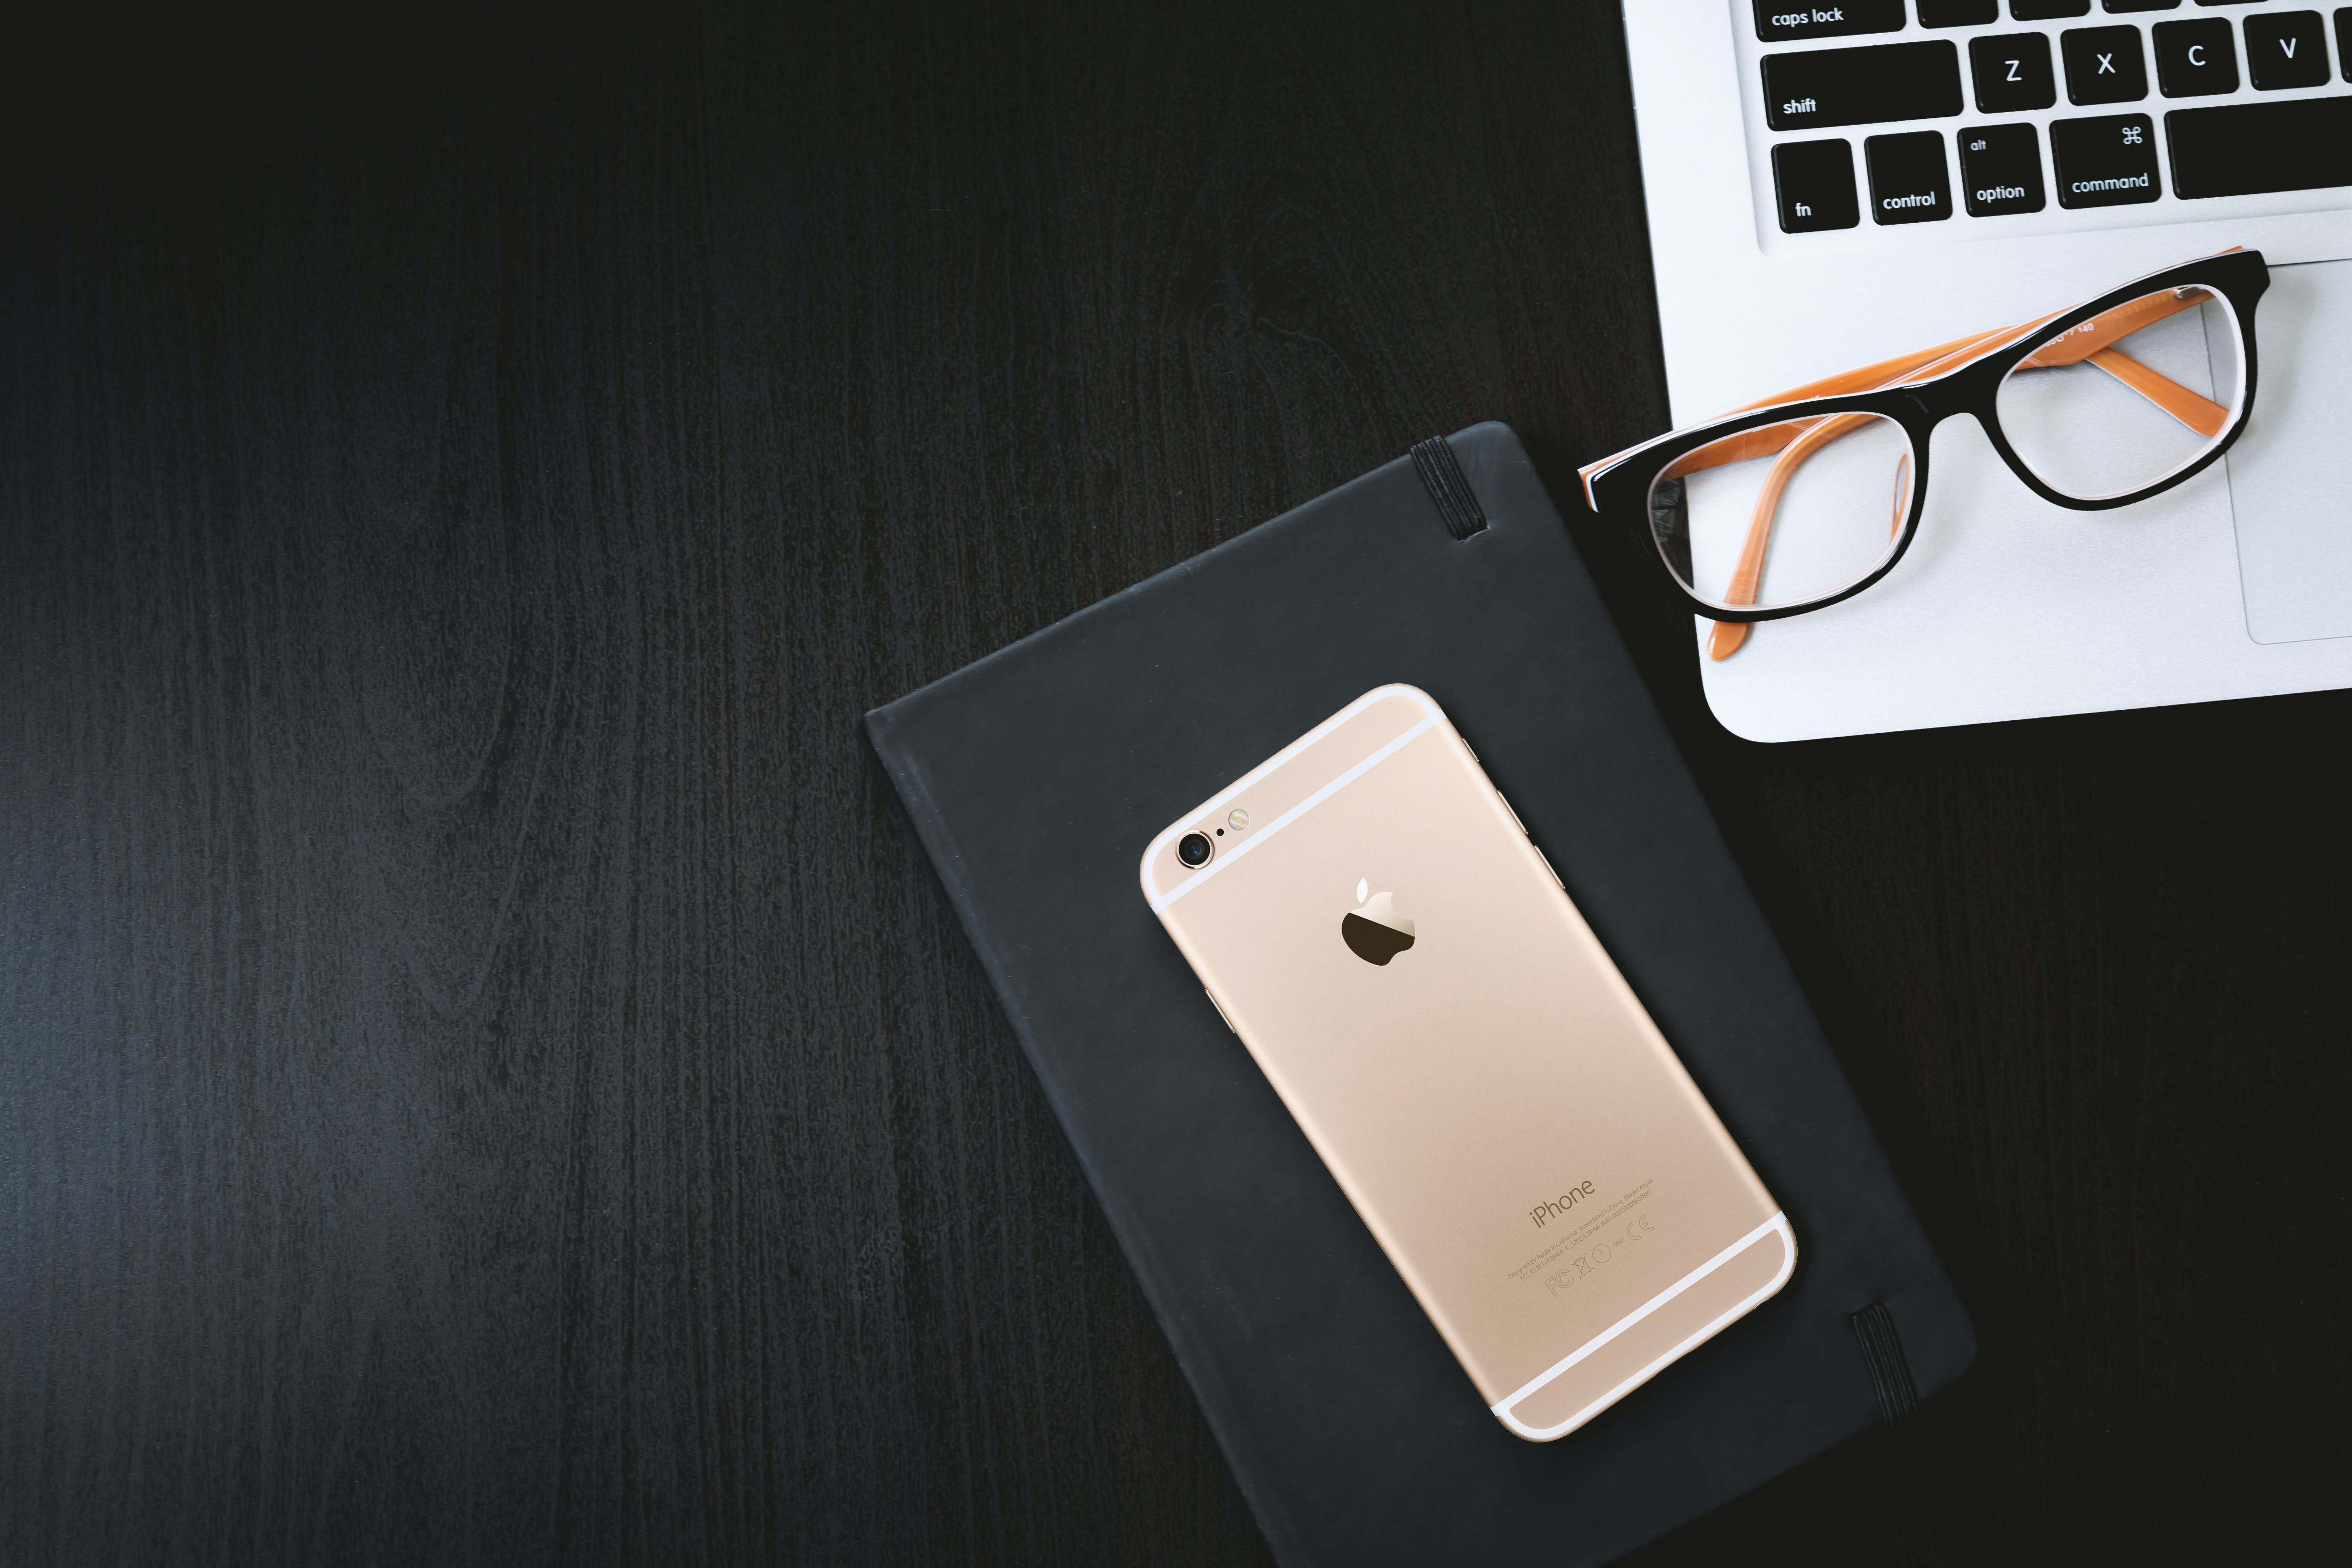 Gold Iphone 6 on Black Case Besides Eyeglasses on Silver Macbook